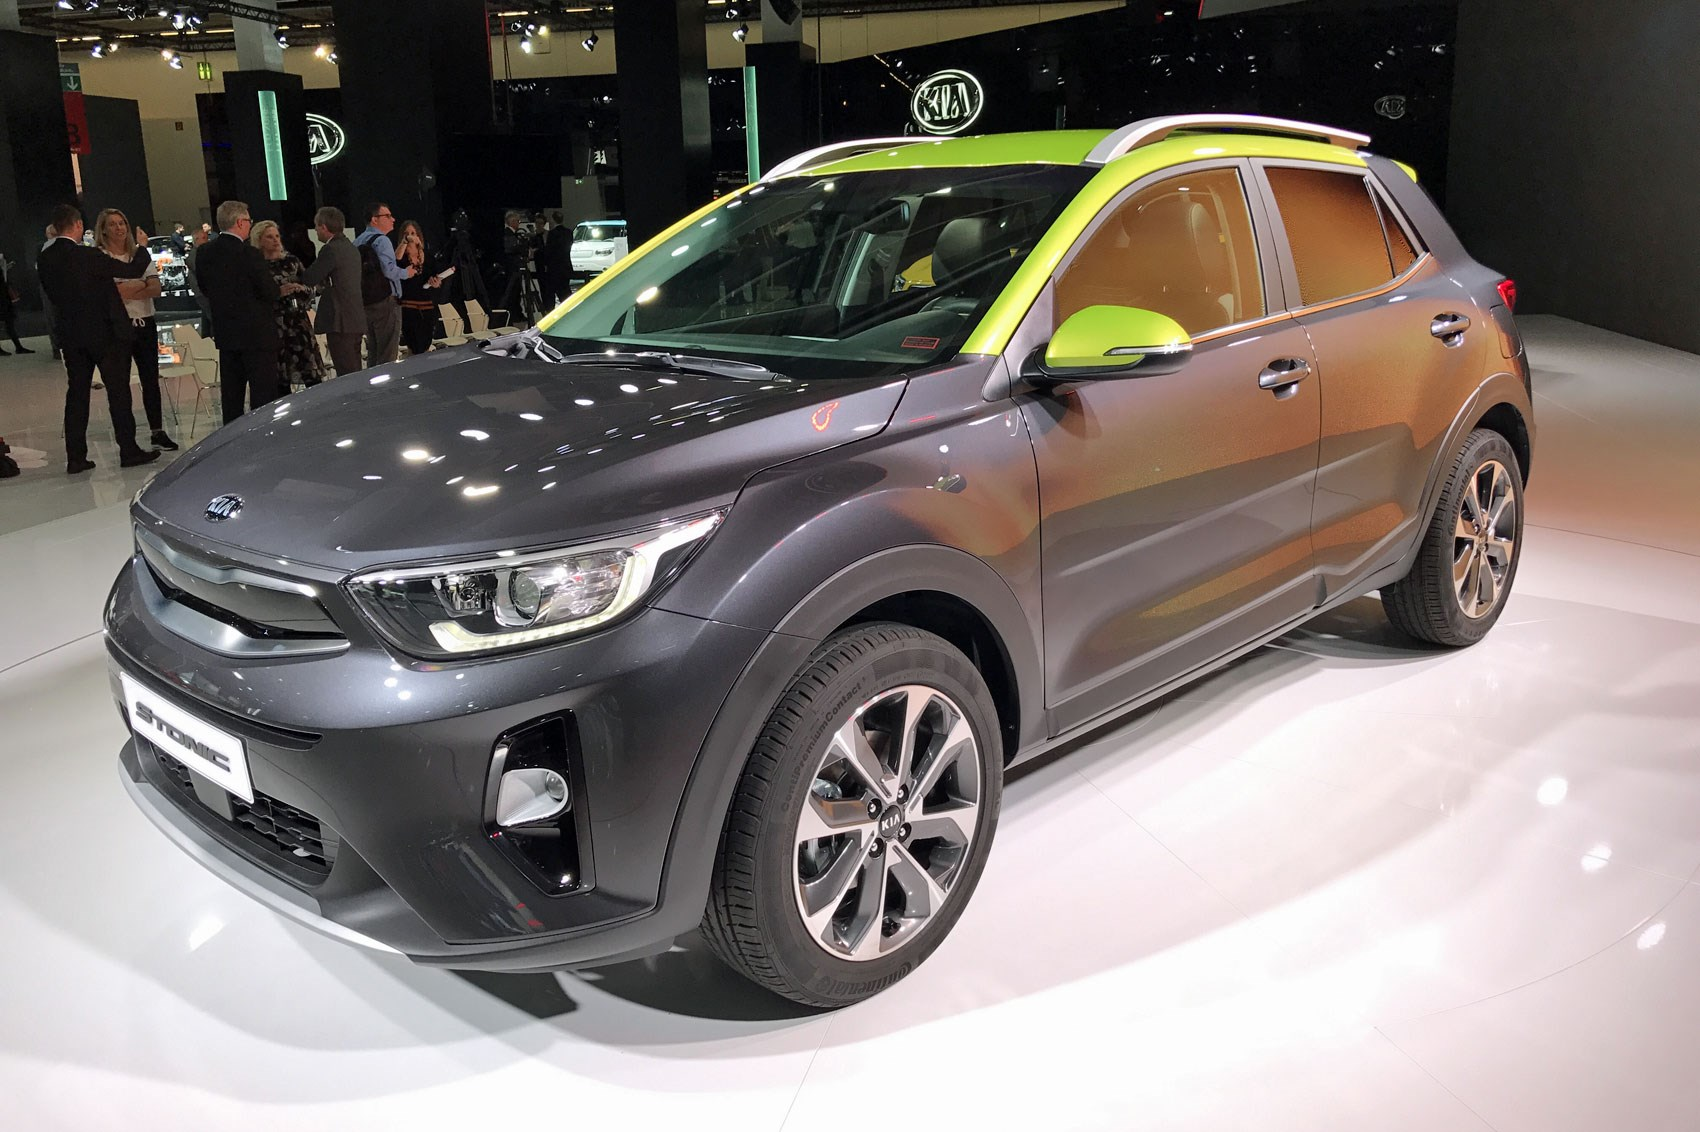 stonic keep compact alive first impressions coming week static still view side new suvs s and front news here kia small wheels this suv